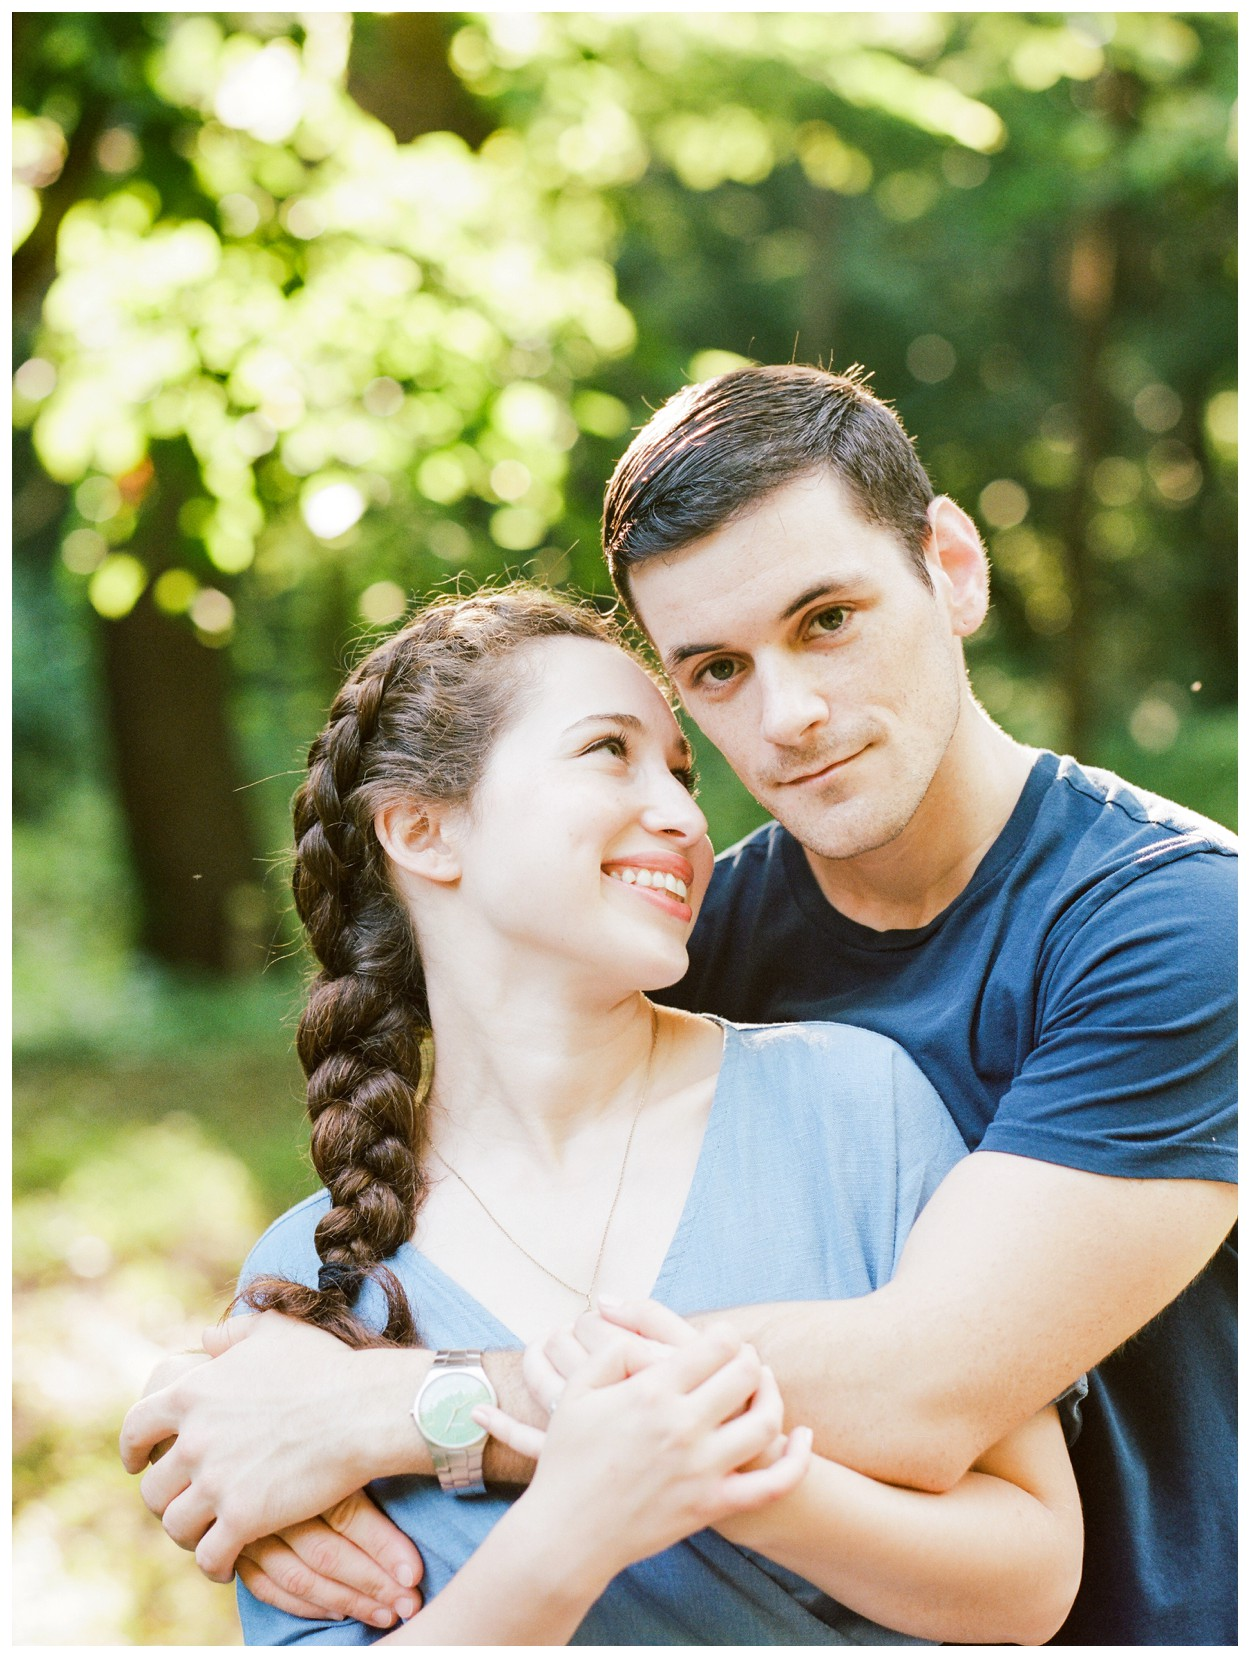 Summer engagement session in the Virginia woods with a dog by fine art wedding photographer Lissa Ryan Photography